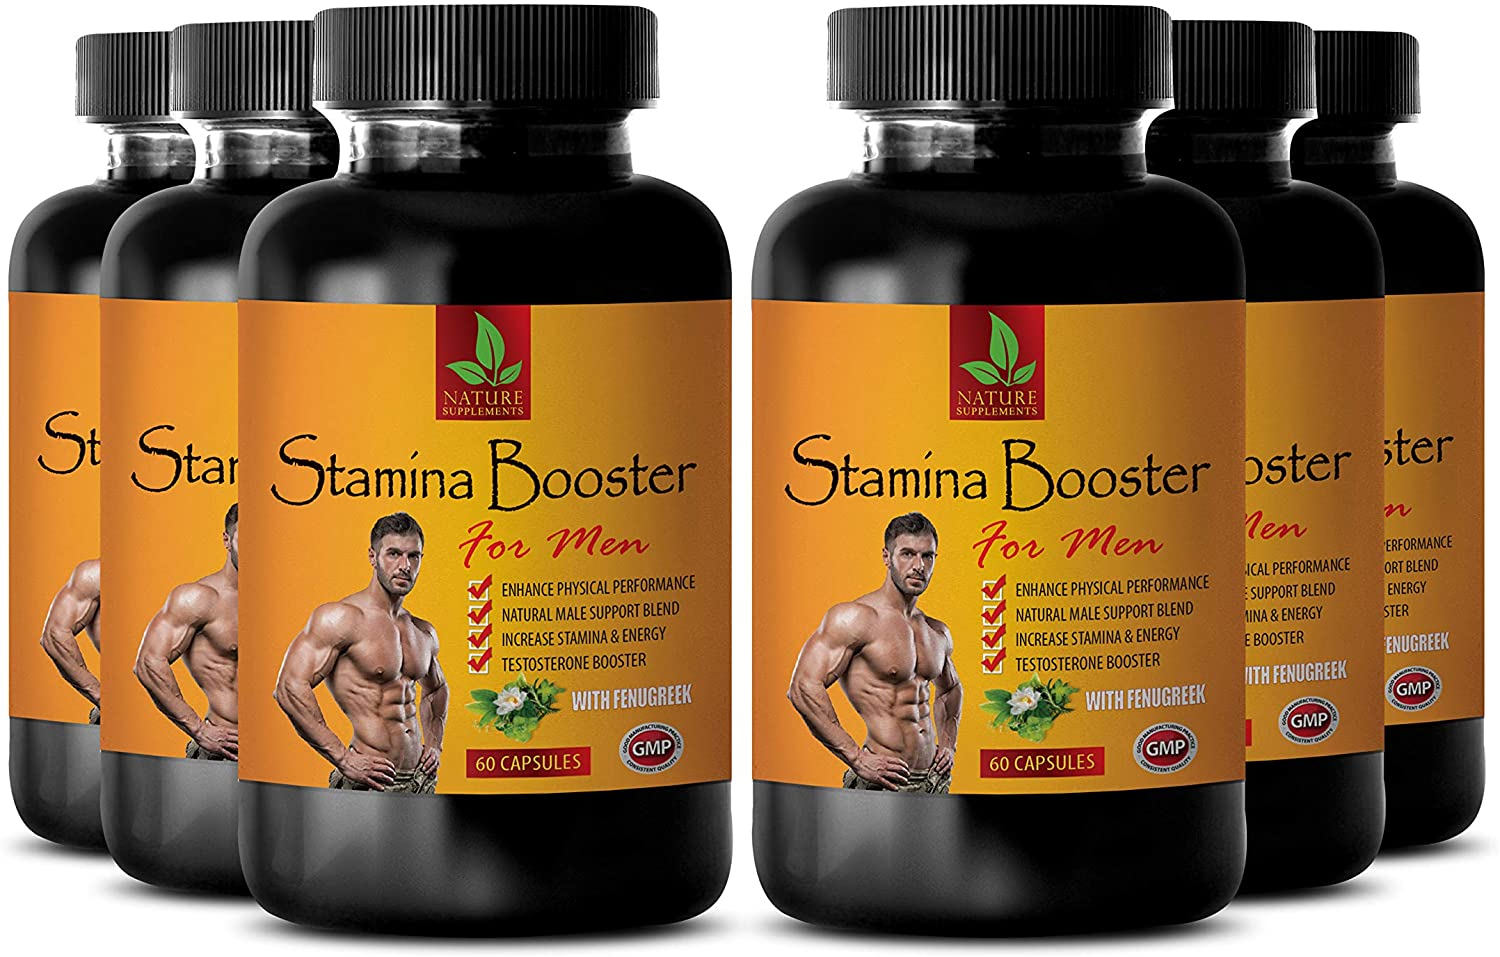 Boost Athletic Performance - Muscle Building Supplements for Men - Stamina Booster for Men with Fenugreek - Horny Goat Weed Dietary Supplement - maca Extract Capsules - 6 Bottles 360 Capsules